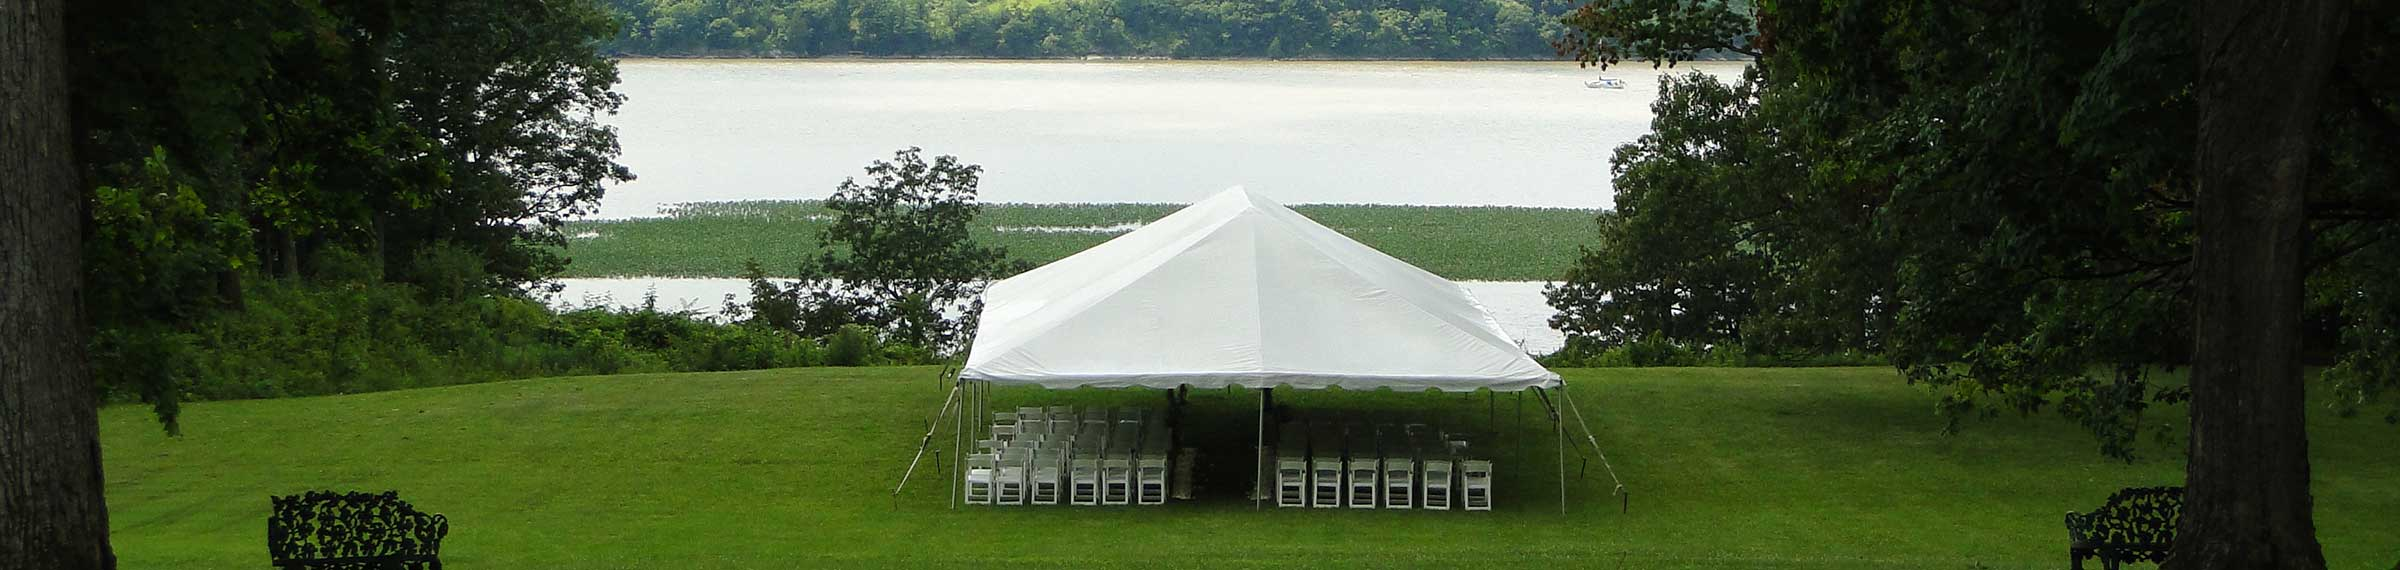 Rent your tent for your wedding from Columbia tent rentals located in Columbia county ny